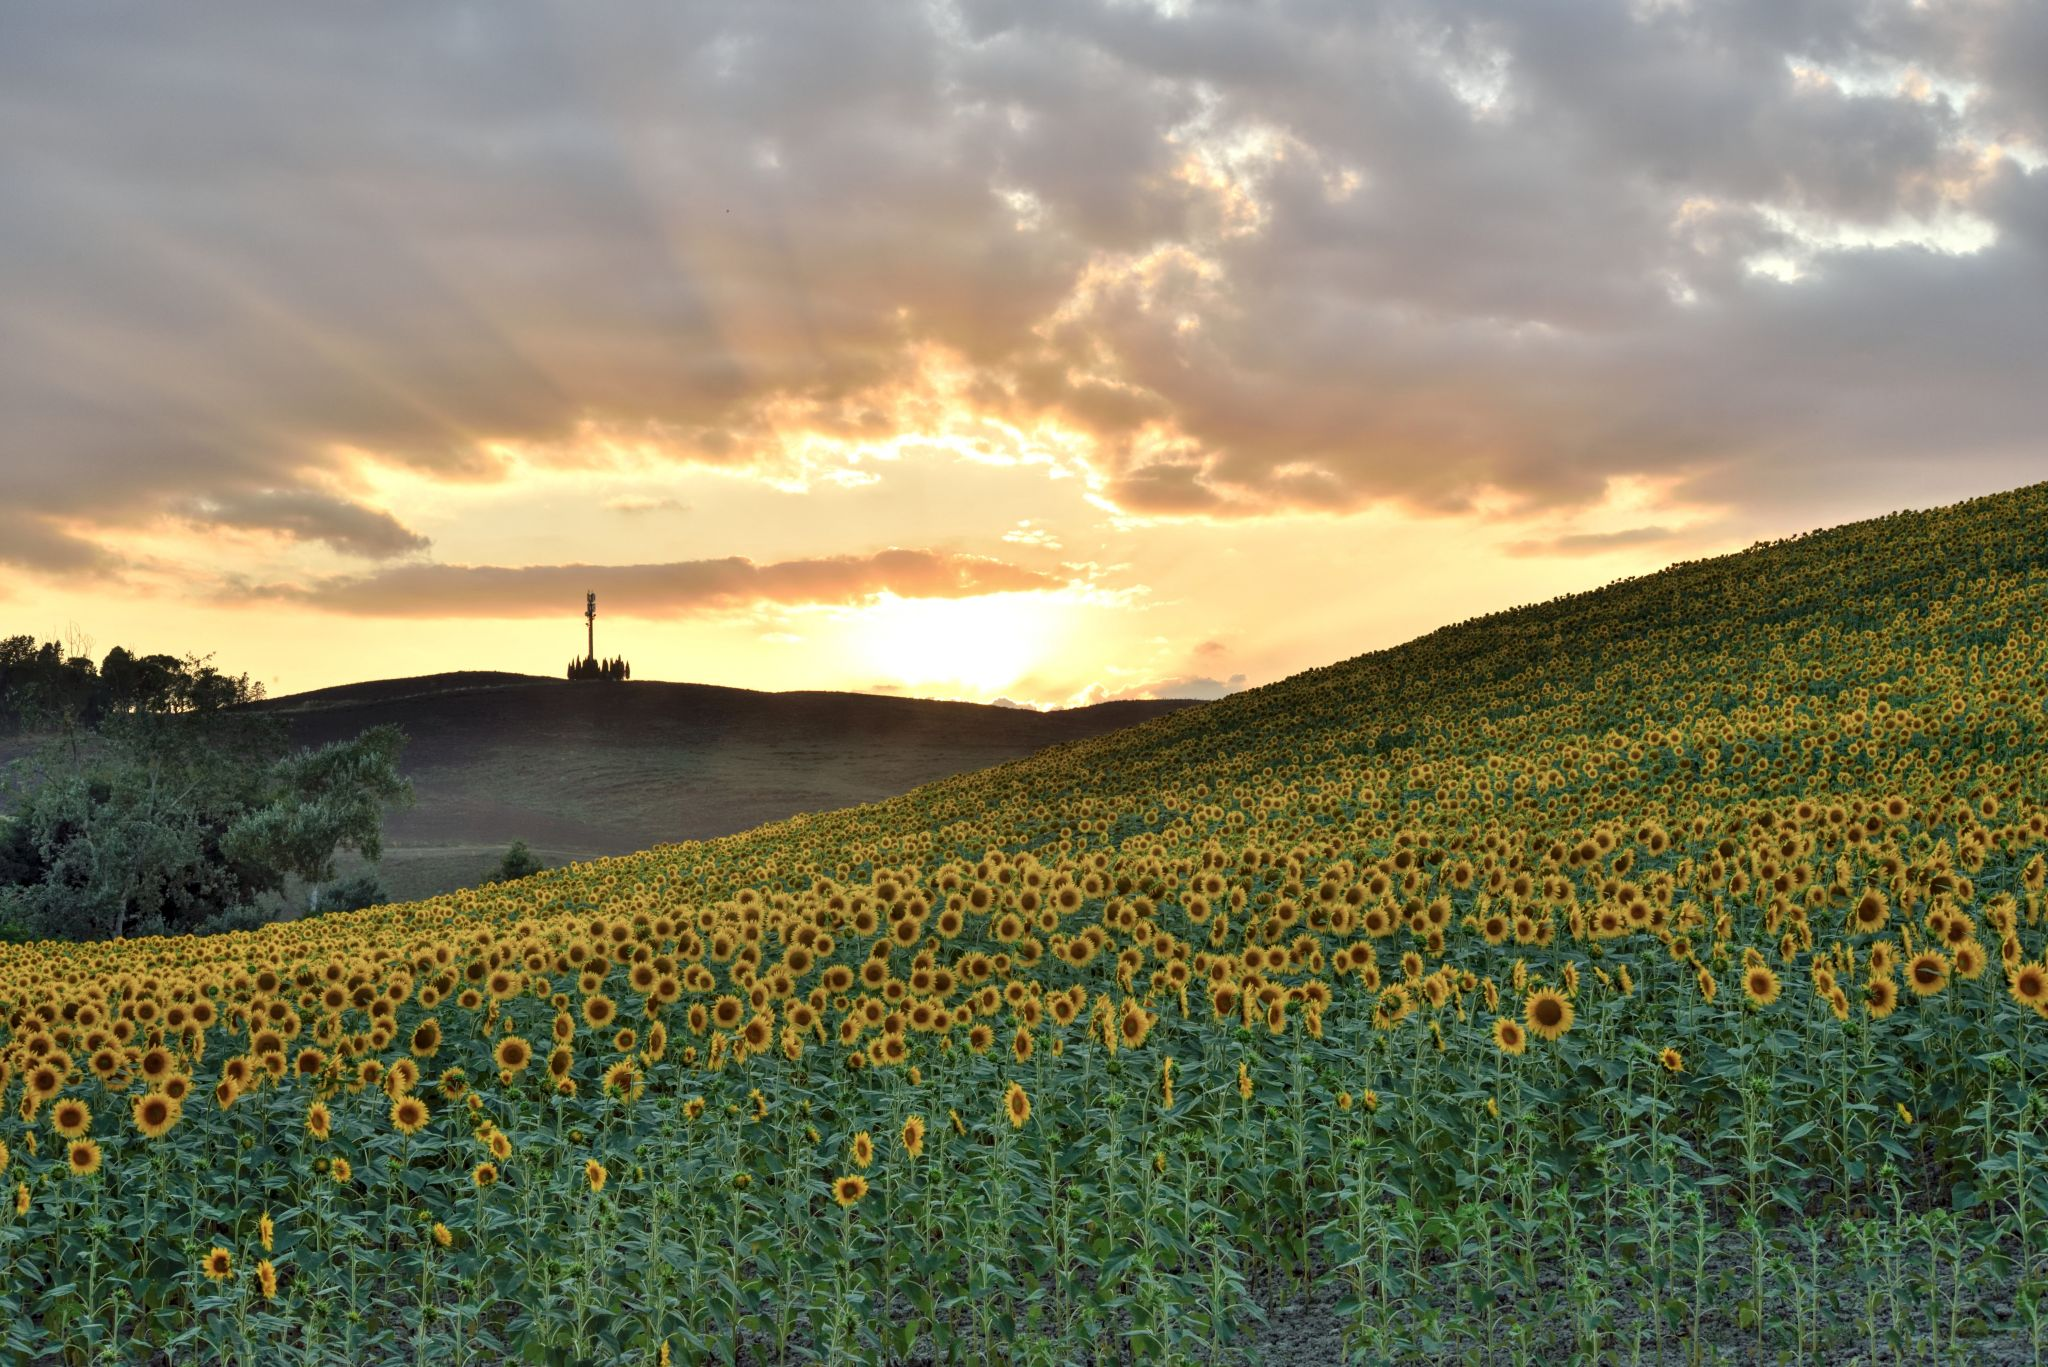 Summer in Tuscany - Sunflowers field, Italy